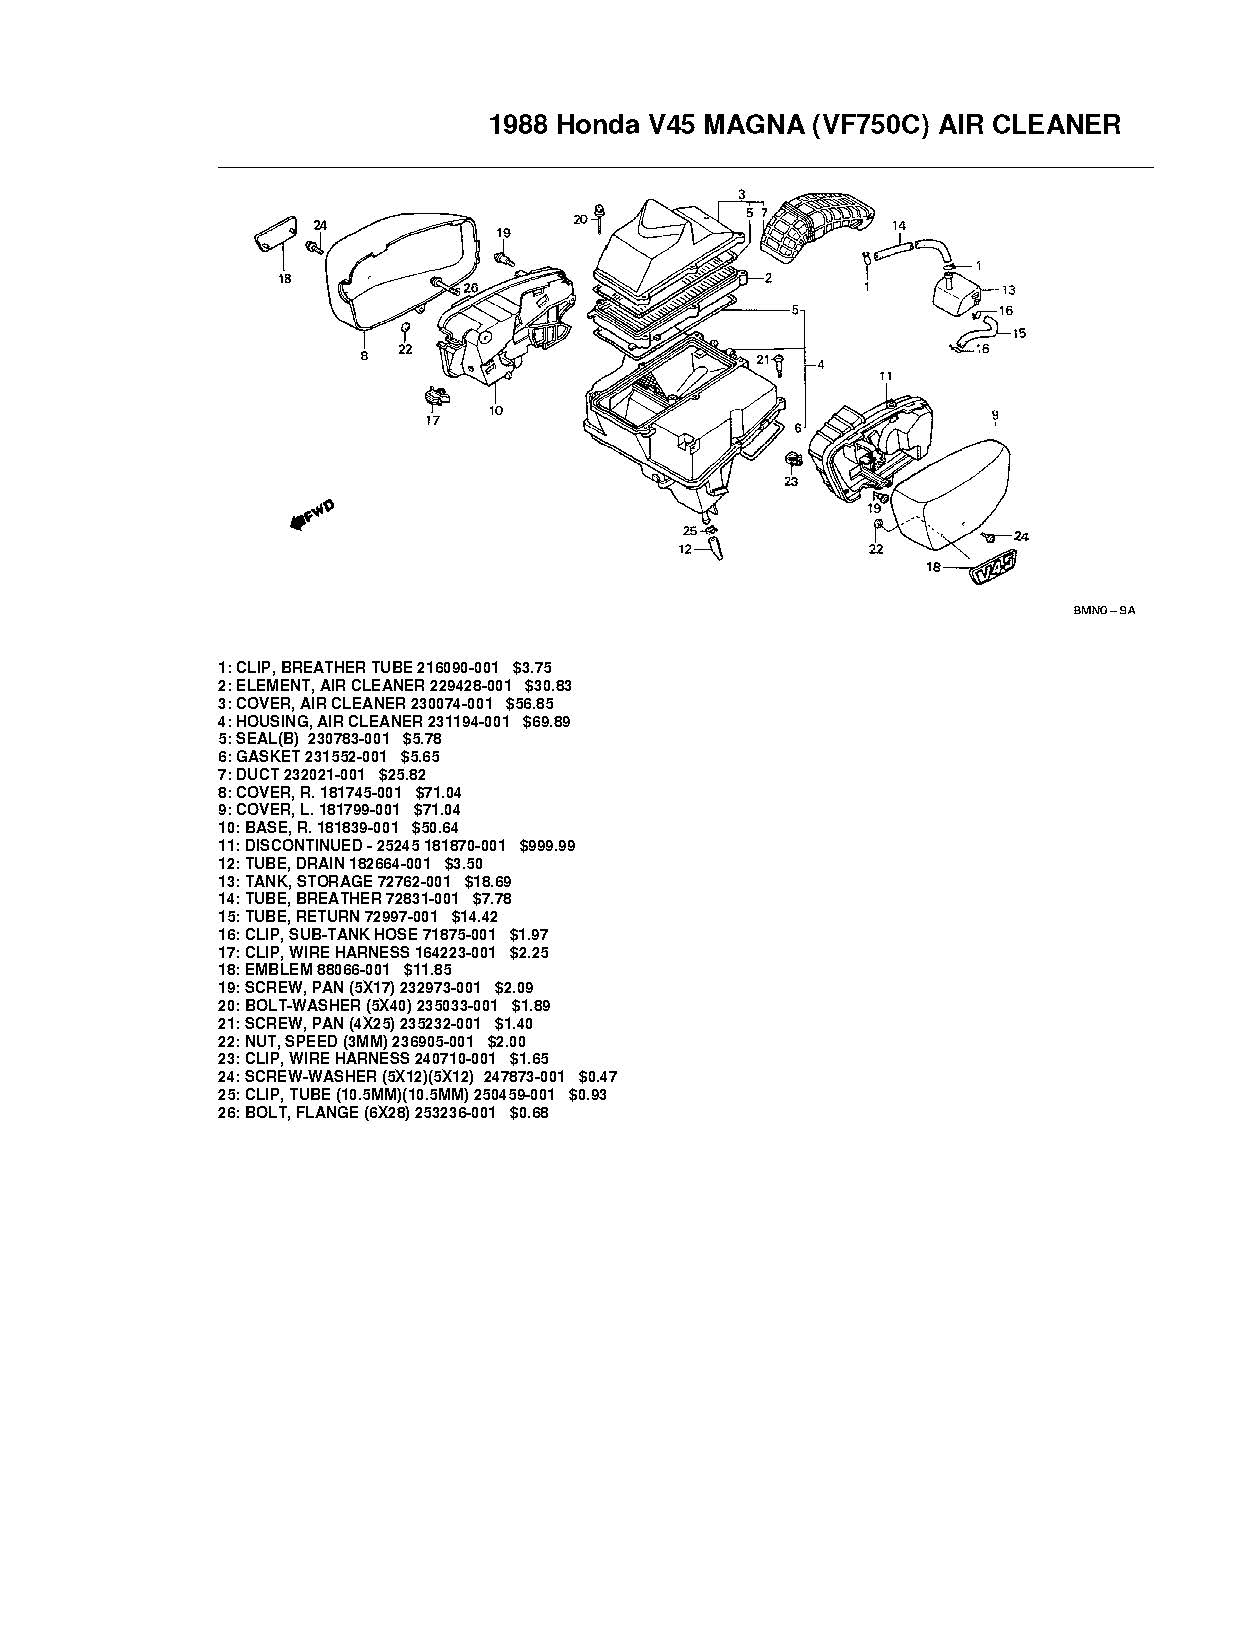 Parts List For Honda Vf750c V45 Has Been Added